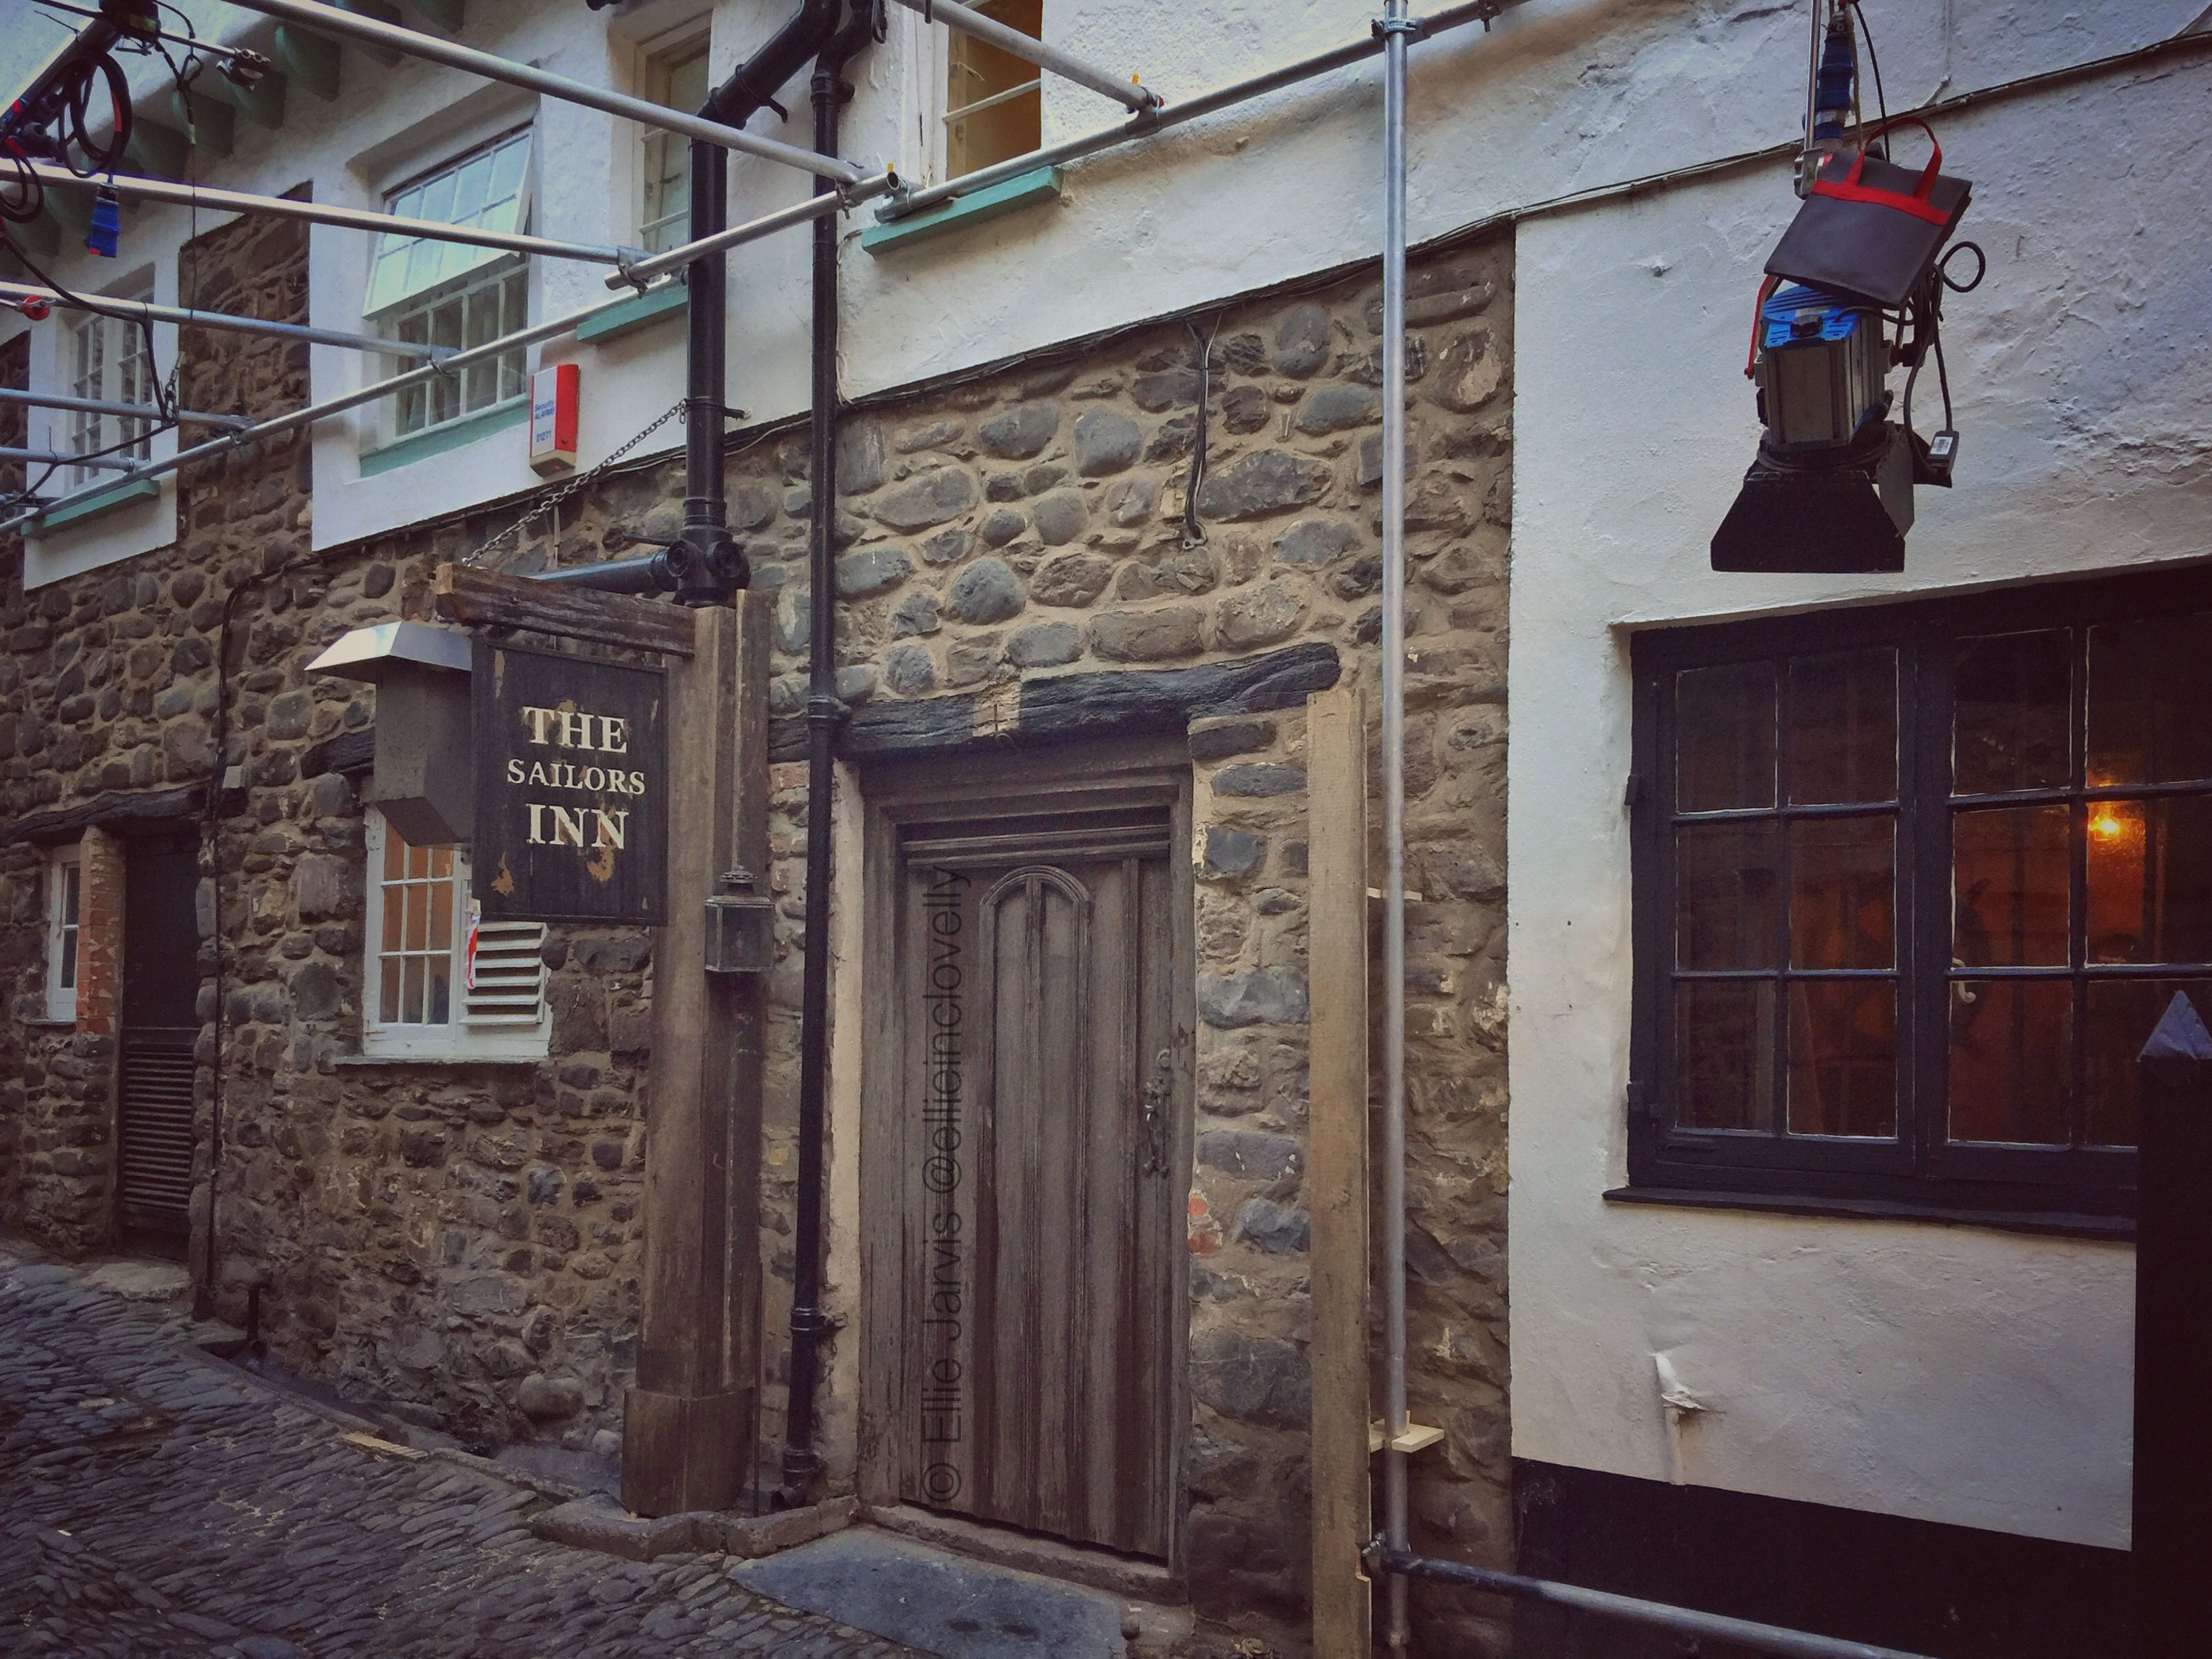 The Sailors Inn! The crew adapted our local pub for filming